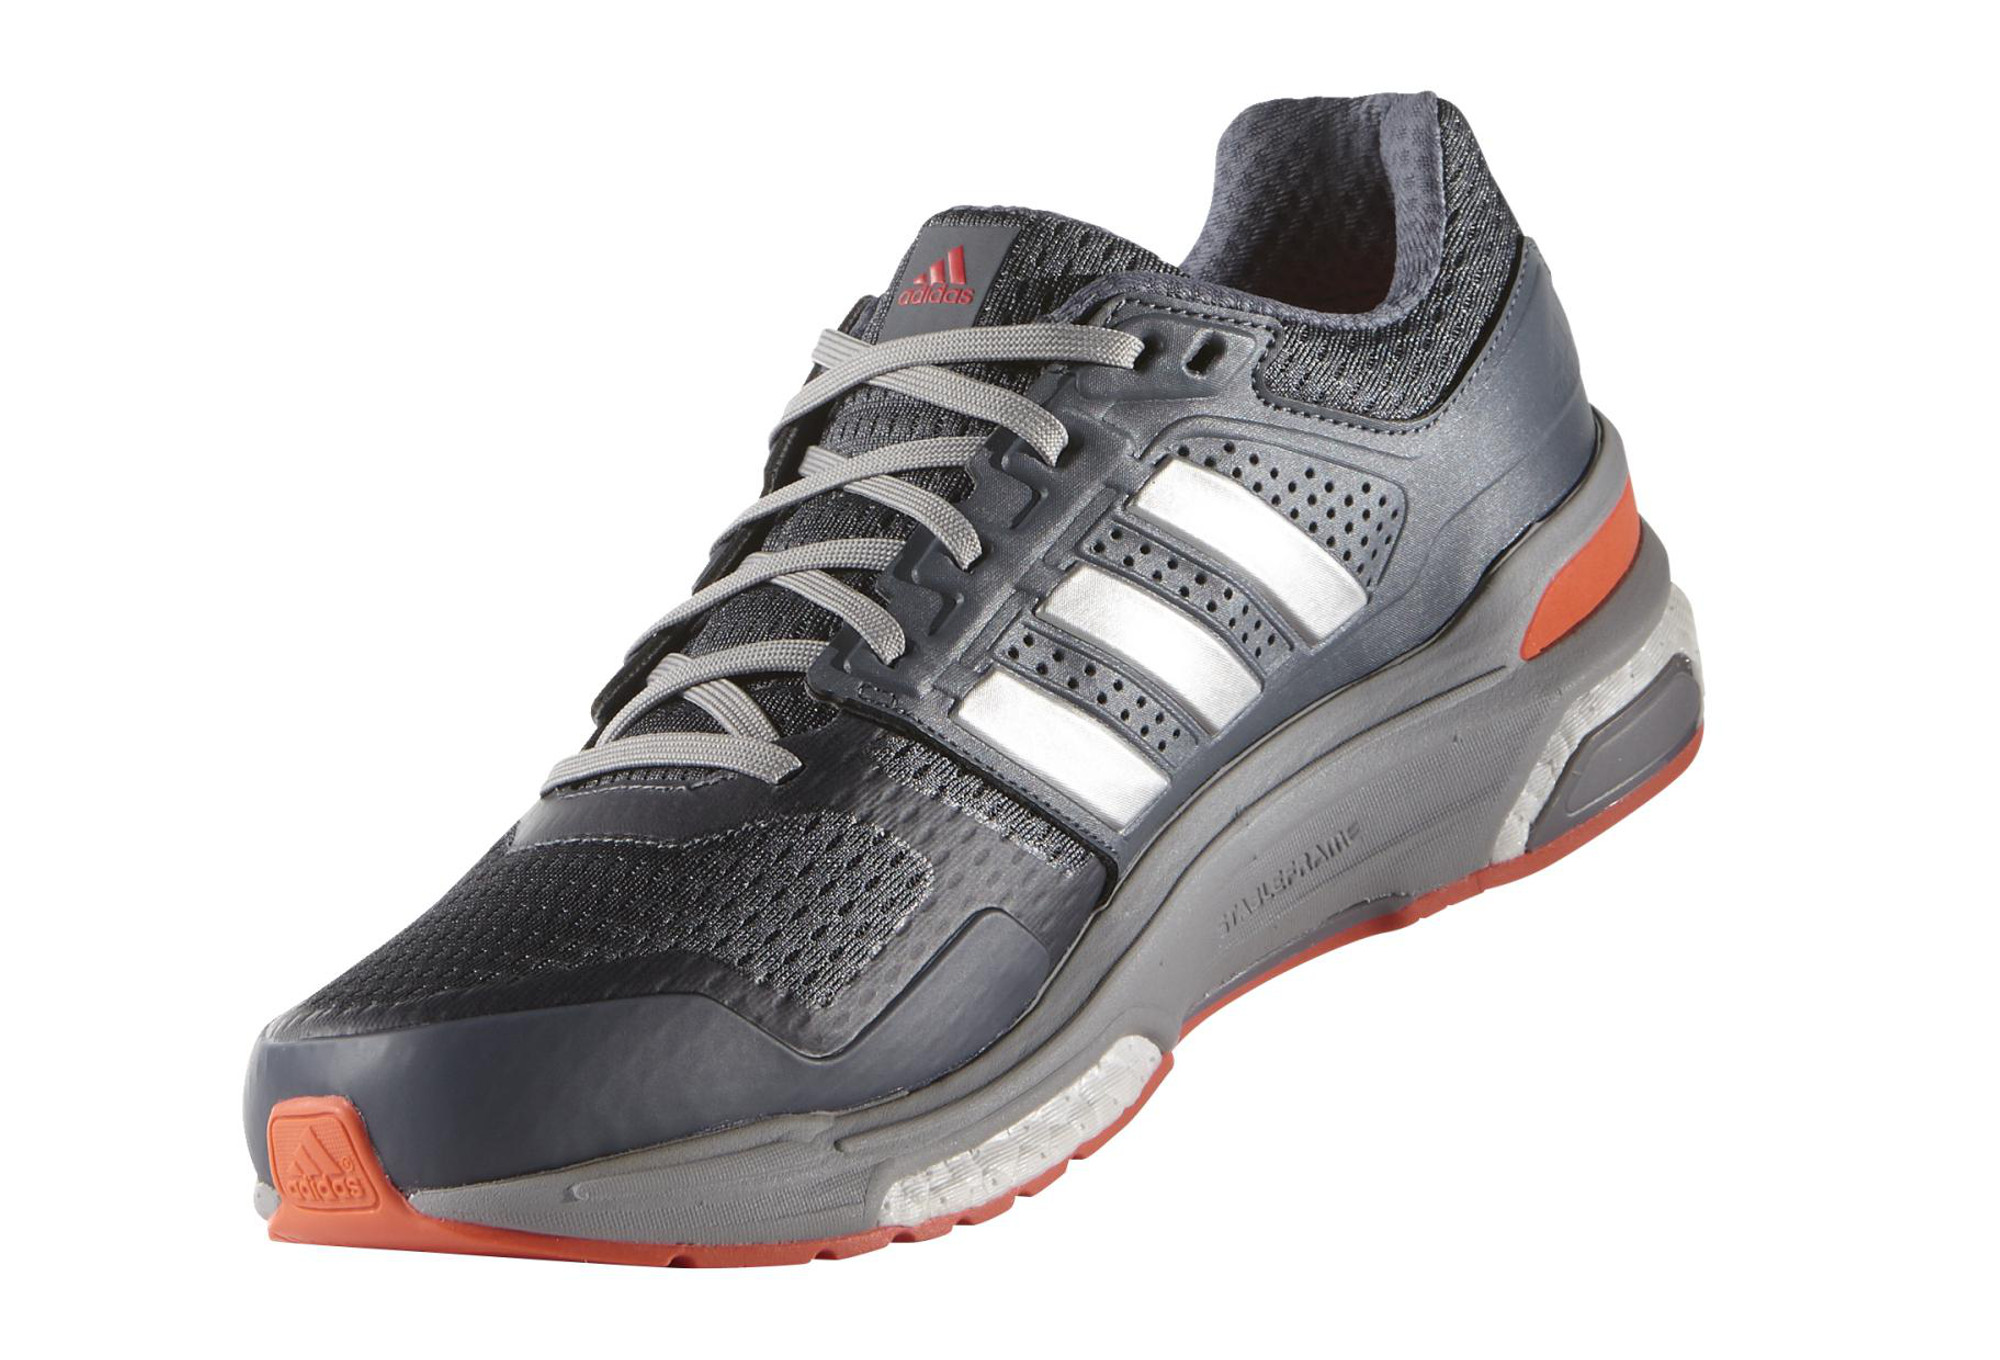 9c88f0977d515 adidas SUPERNOVA SEQUENCE BOOST 8 Pair of Shoes Grey Orange ...